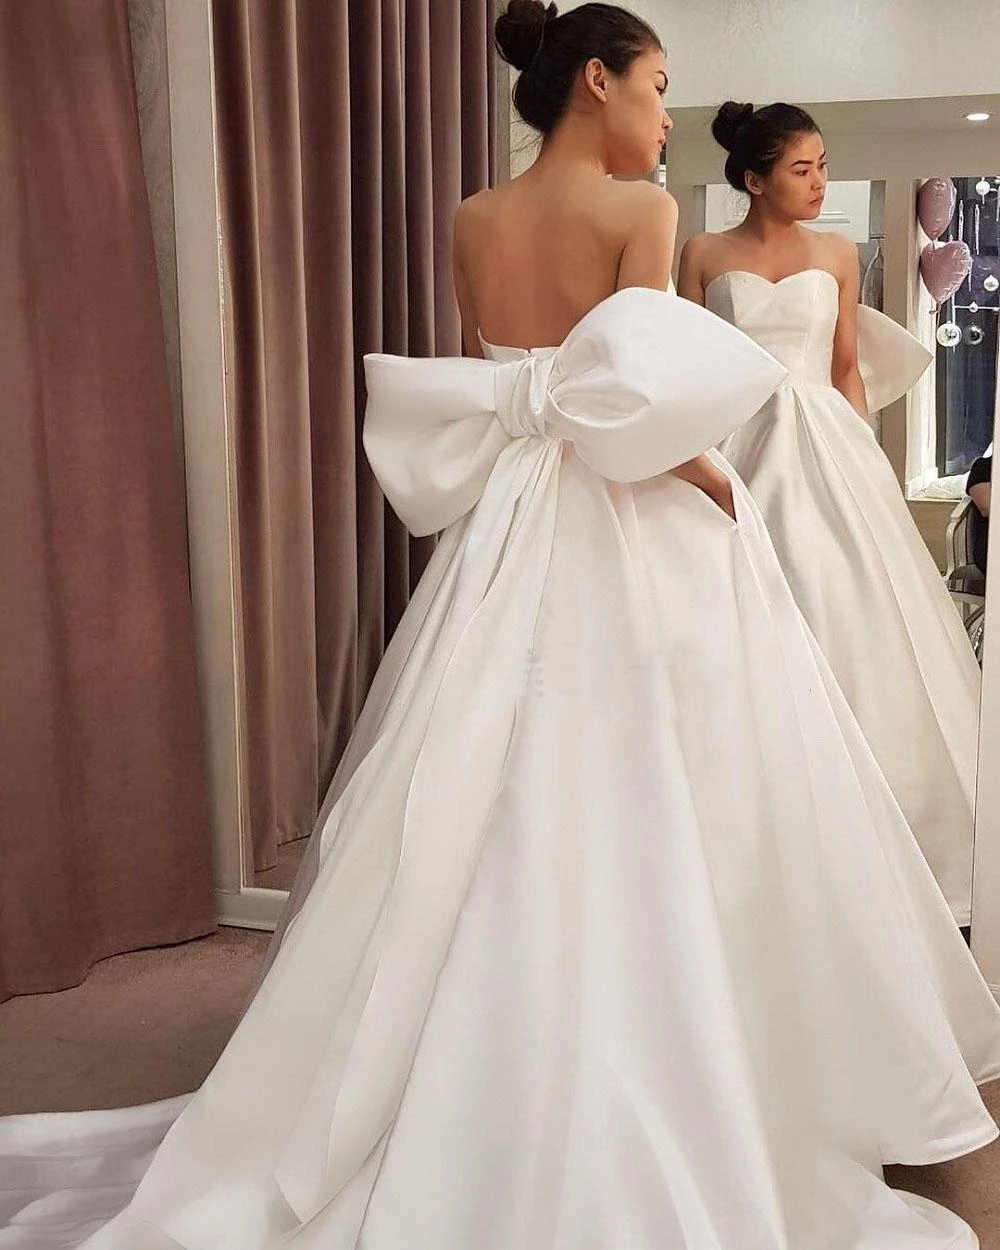 Simple Ball Gown Wedding Dresses With Back Big Bow Robe Mariee Big Wedding Dresses Bow Wedding Dress Wedding Dresses [ 1250 x 1000 Pixel ]